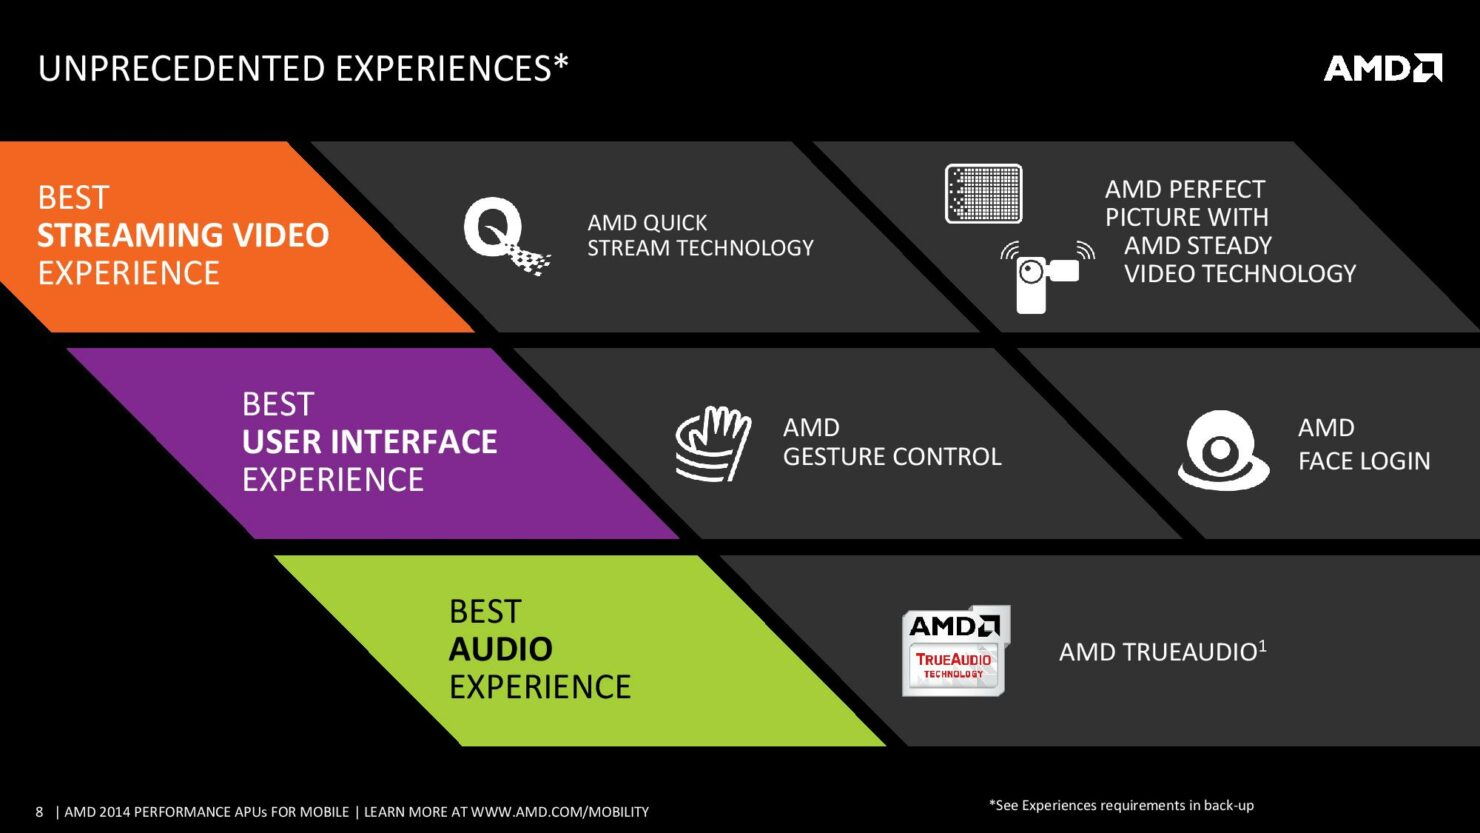 amd2014performancemobileapus-140528183404-phpapp02-page-008